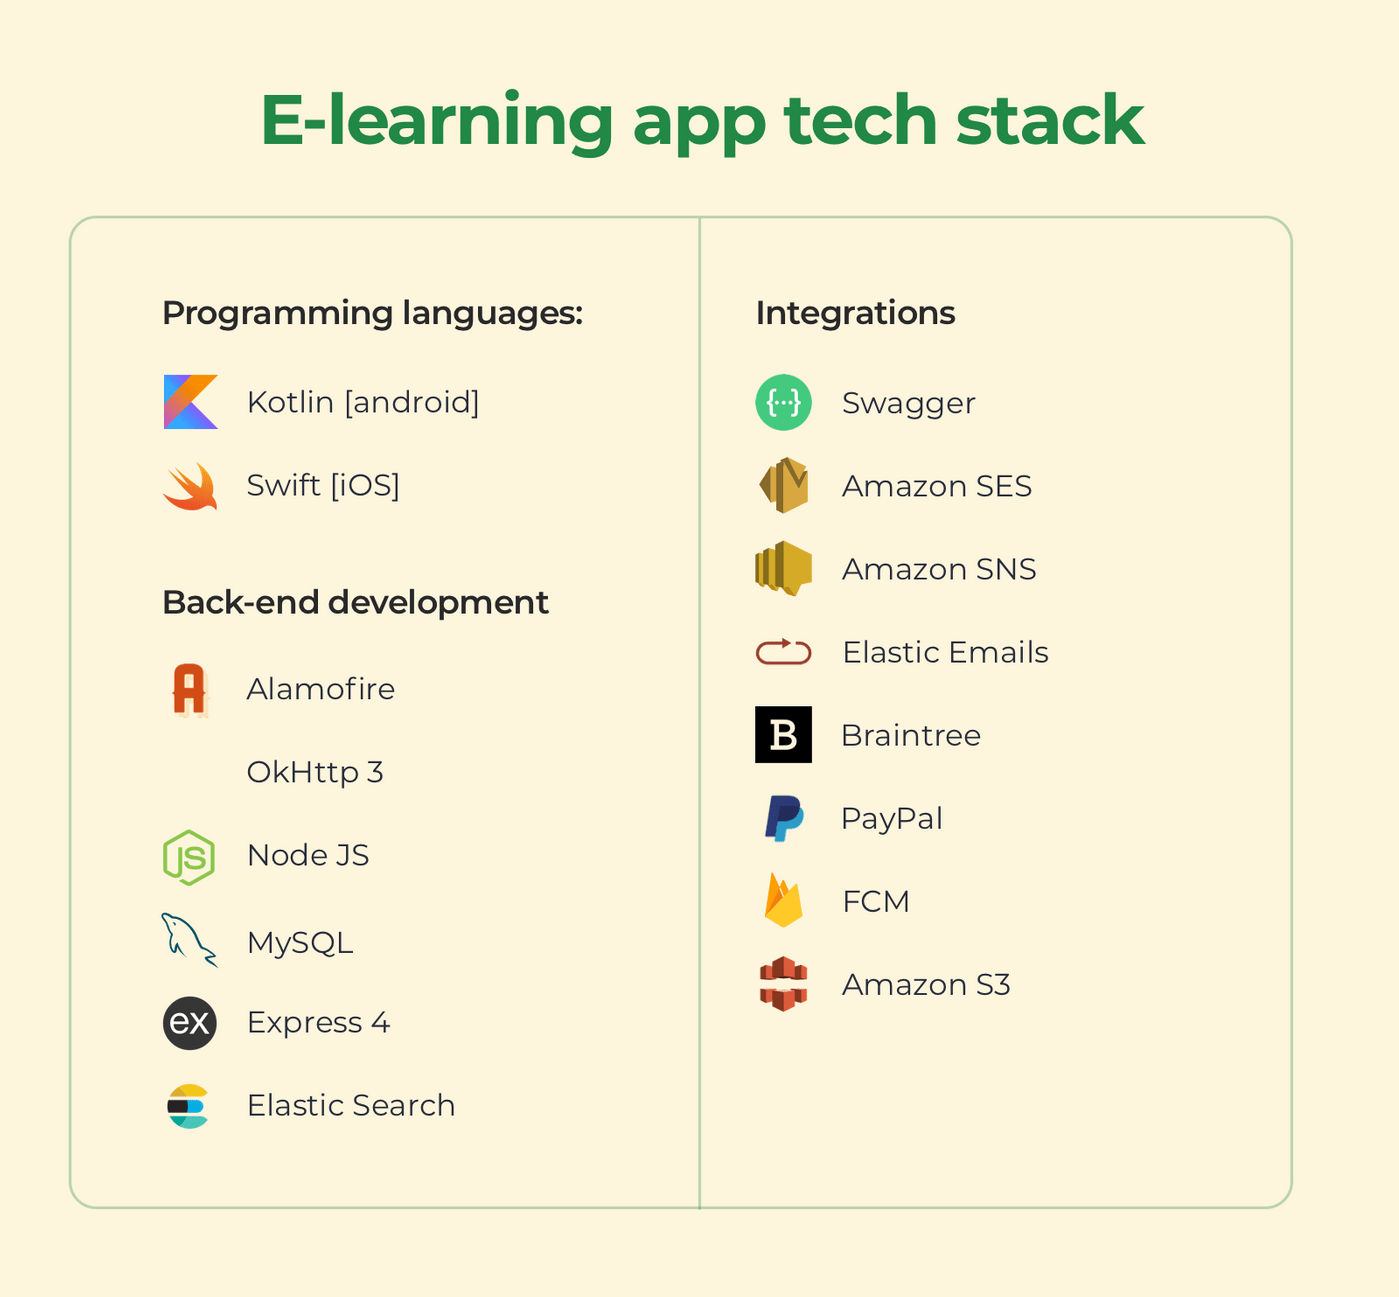 Technologies used for an e-learning app development